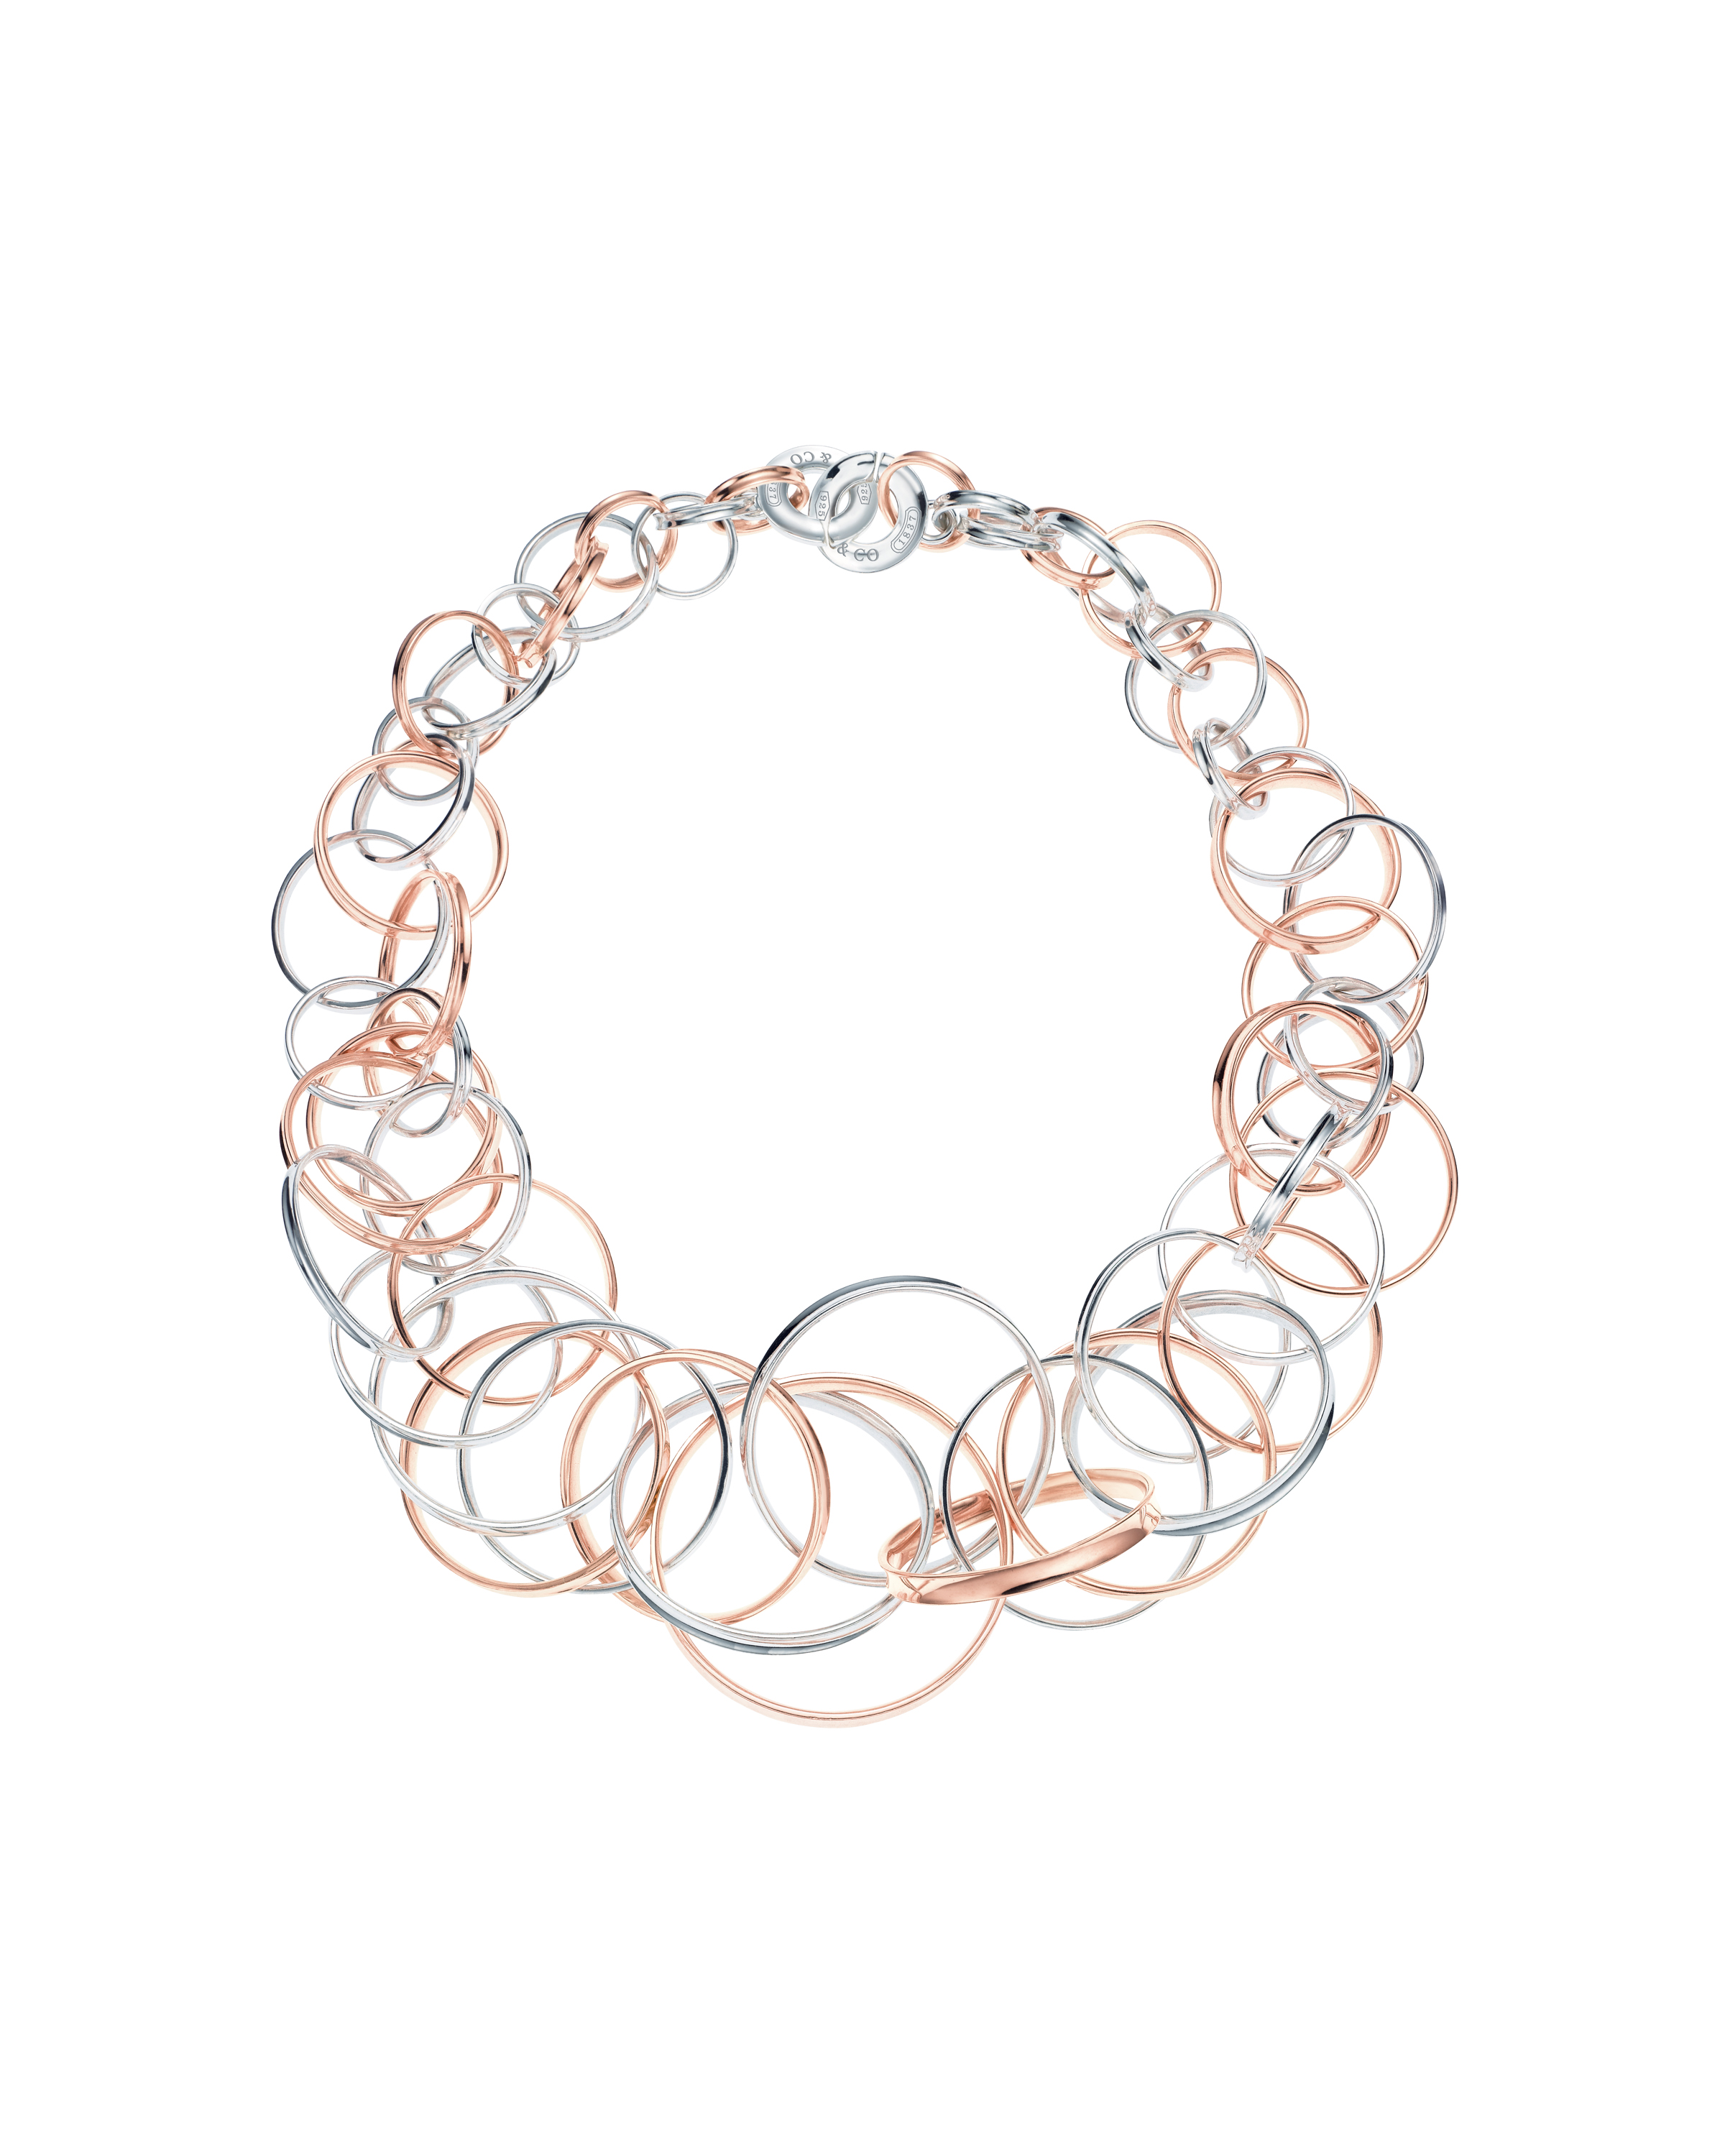 Tiffany & Co. Celebrates 175th Anniversary With New Collections